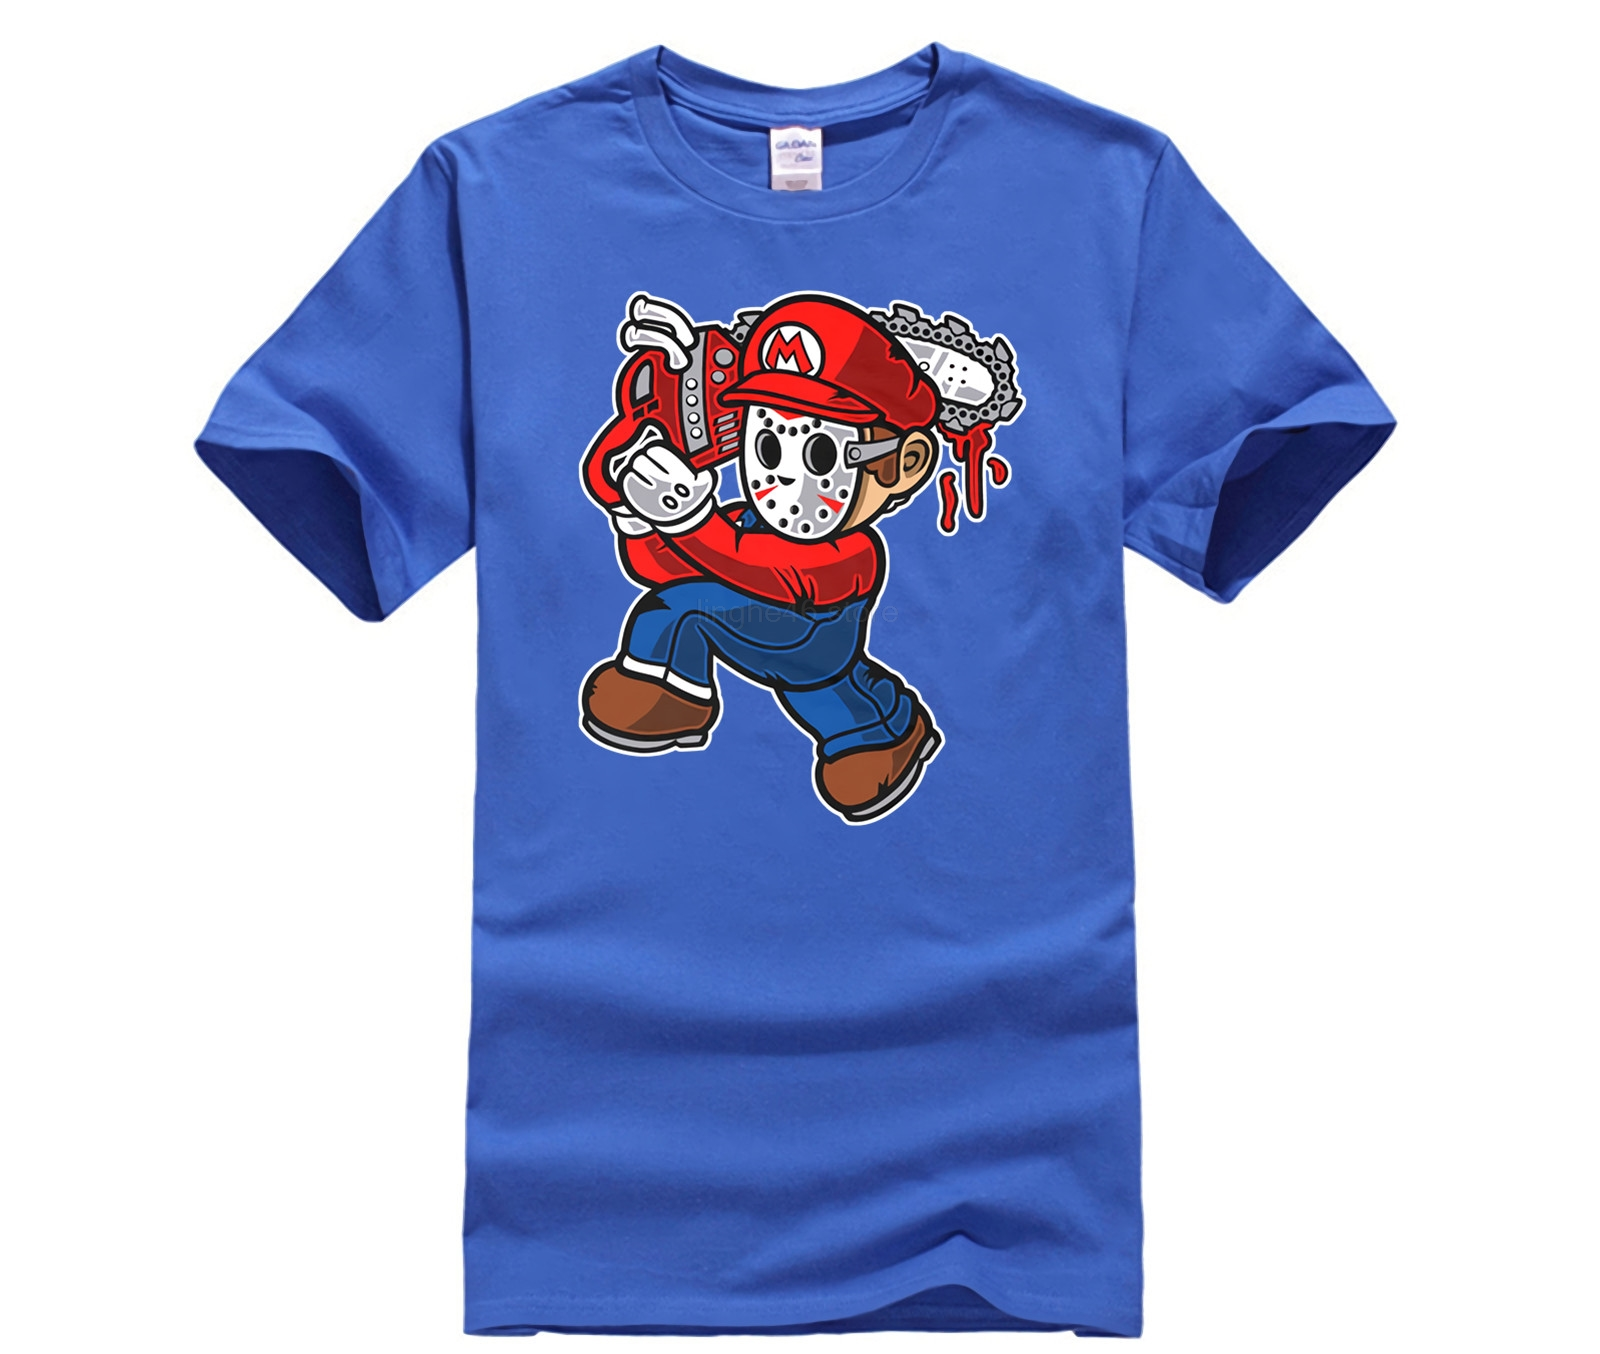 Mario Massacre Graphic design Genuine men 39 s T shirt cotton jersey New 2019 Summer Style Casual Wear in T Shirts from Men 39 s Clothing